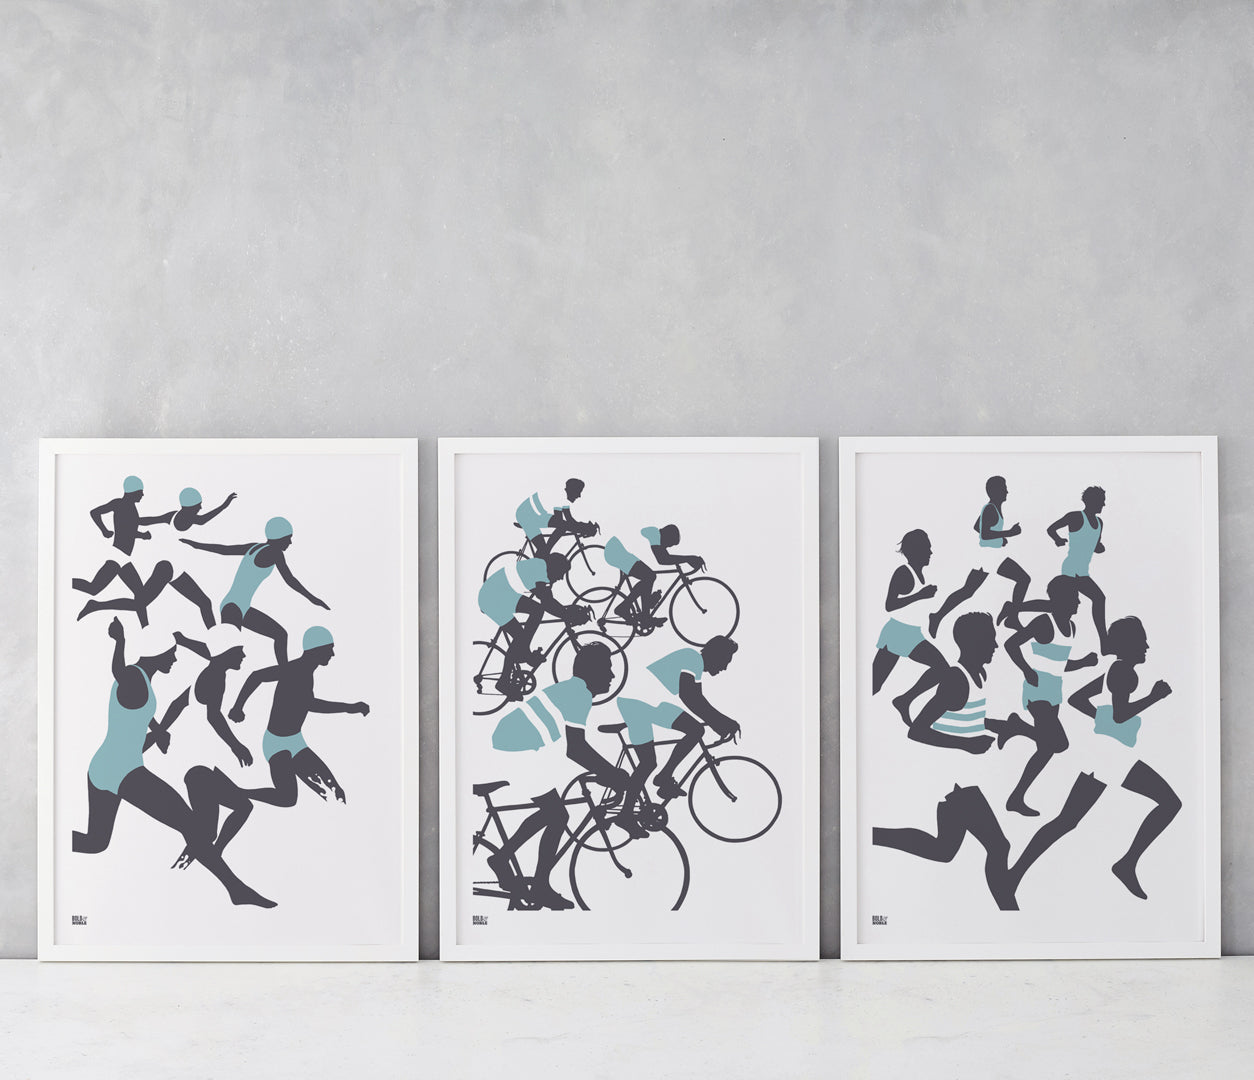 Wall Art where to start: Triathlon Posters, Running Poster, Cycling Poster, Swimming Poster